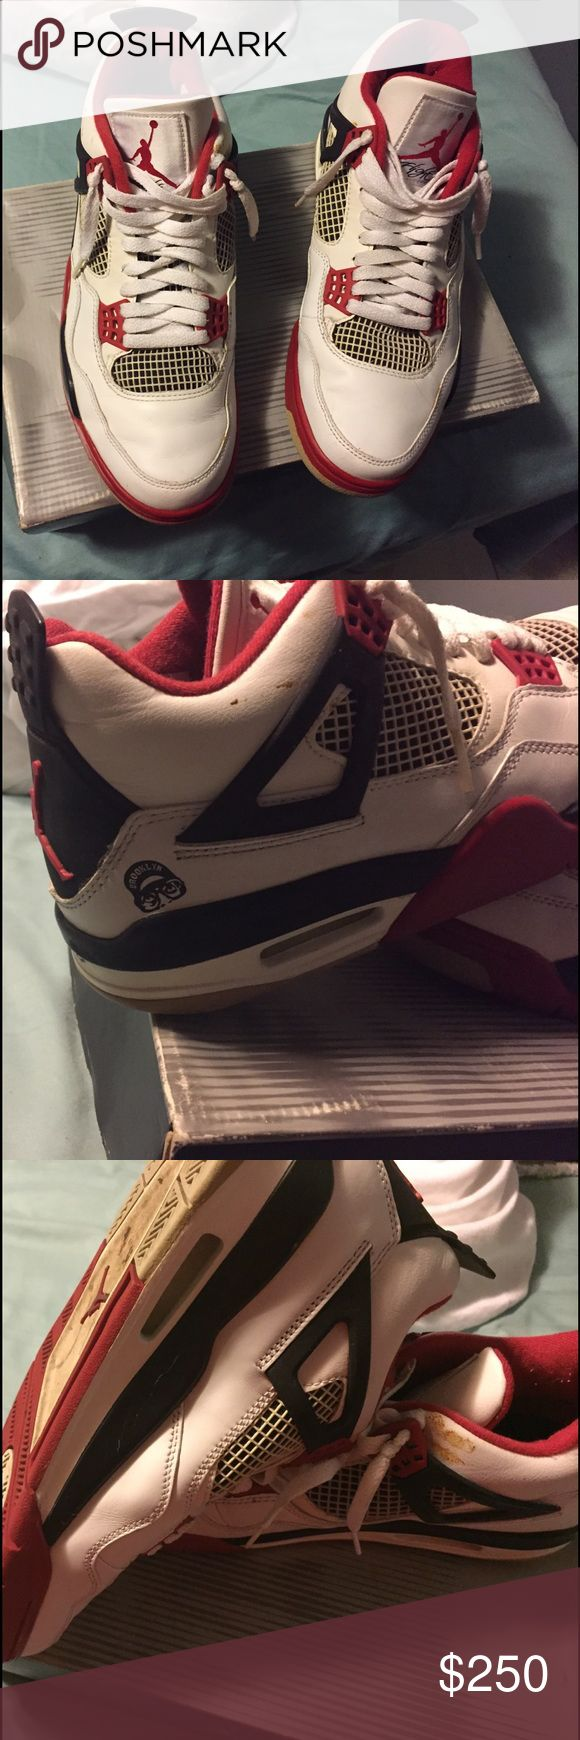 Jordan 4 son of mars spike lee Brooklyn addition 2 stains one larger 1 seen in pic on one sneaker and a smaller on the other sneaker both stains do come off. If not for the 2 stains sneakers are in great condition. Bought these in 2001 -2004 Shoes Sneakers